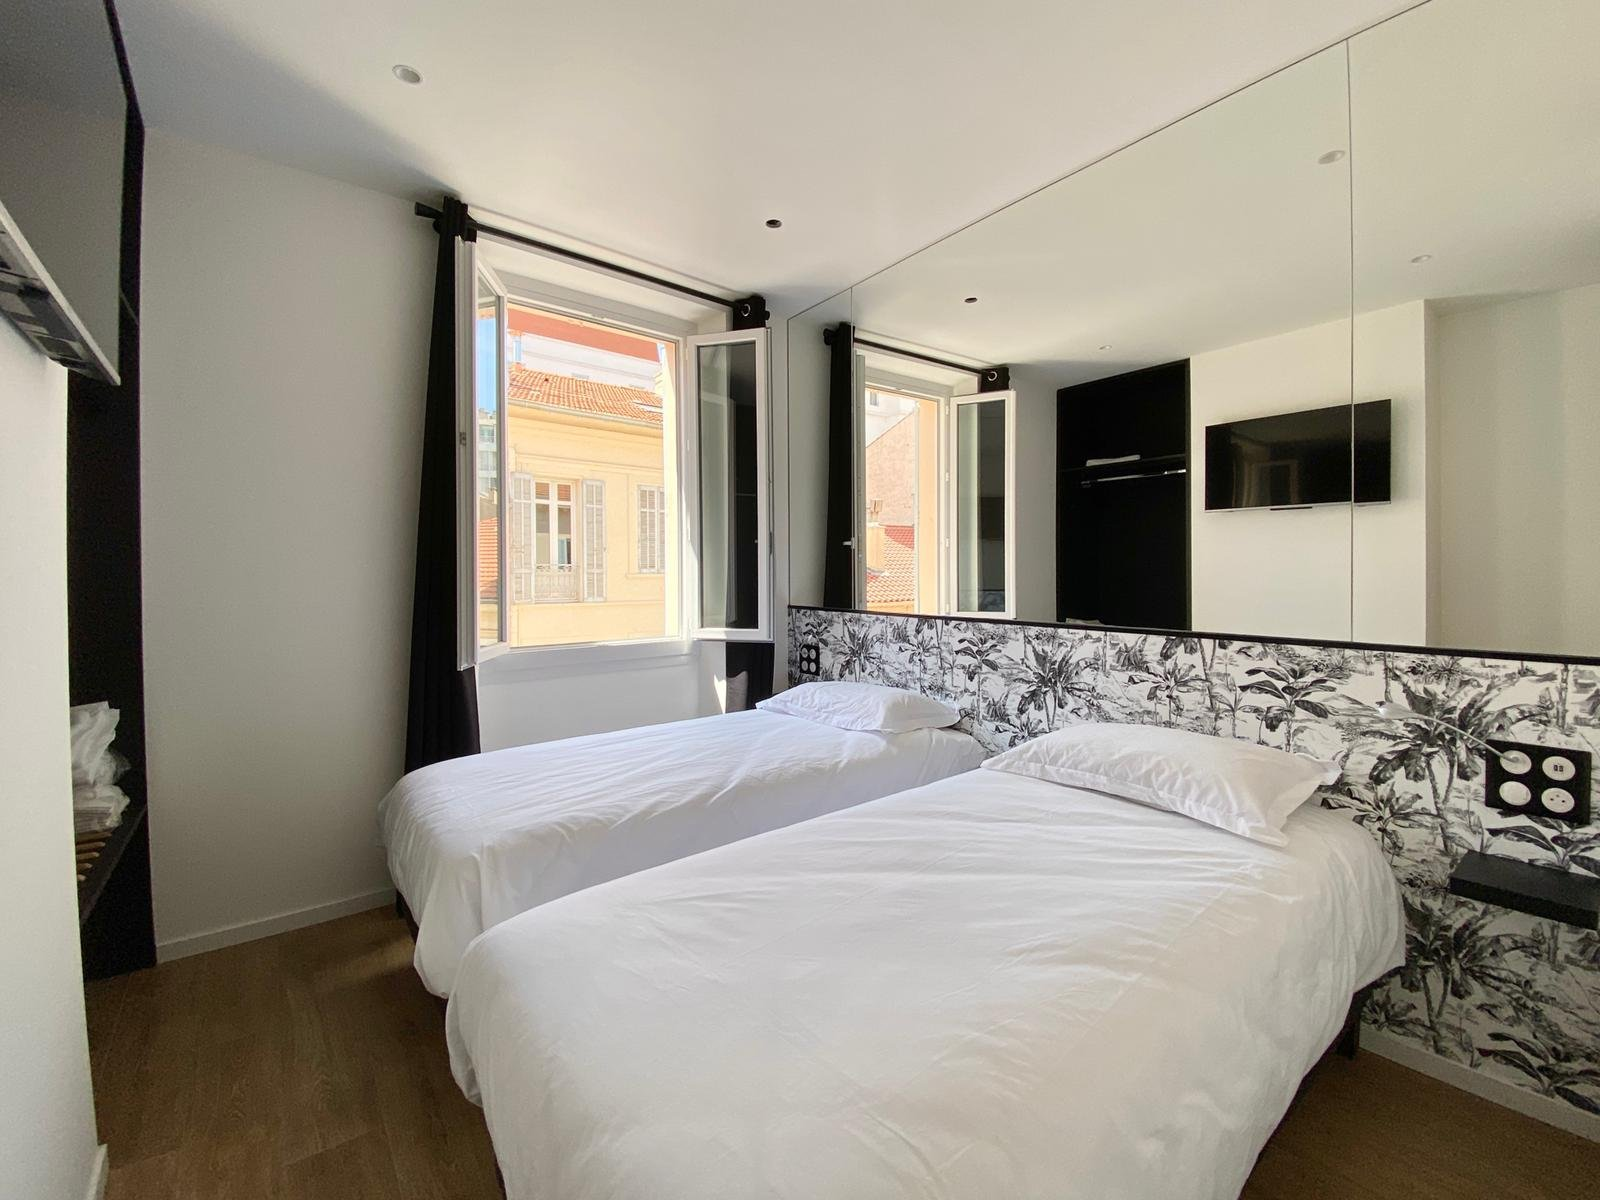 For sale - Lot of 2 appartments 50m away from Le Palais des Festivals - Cannes